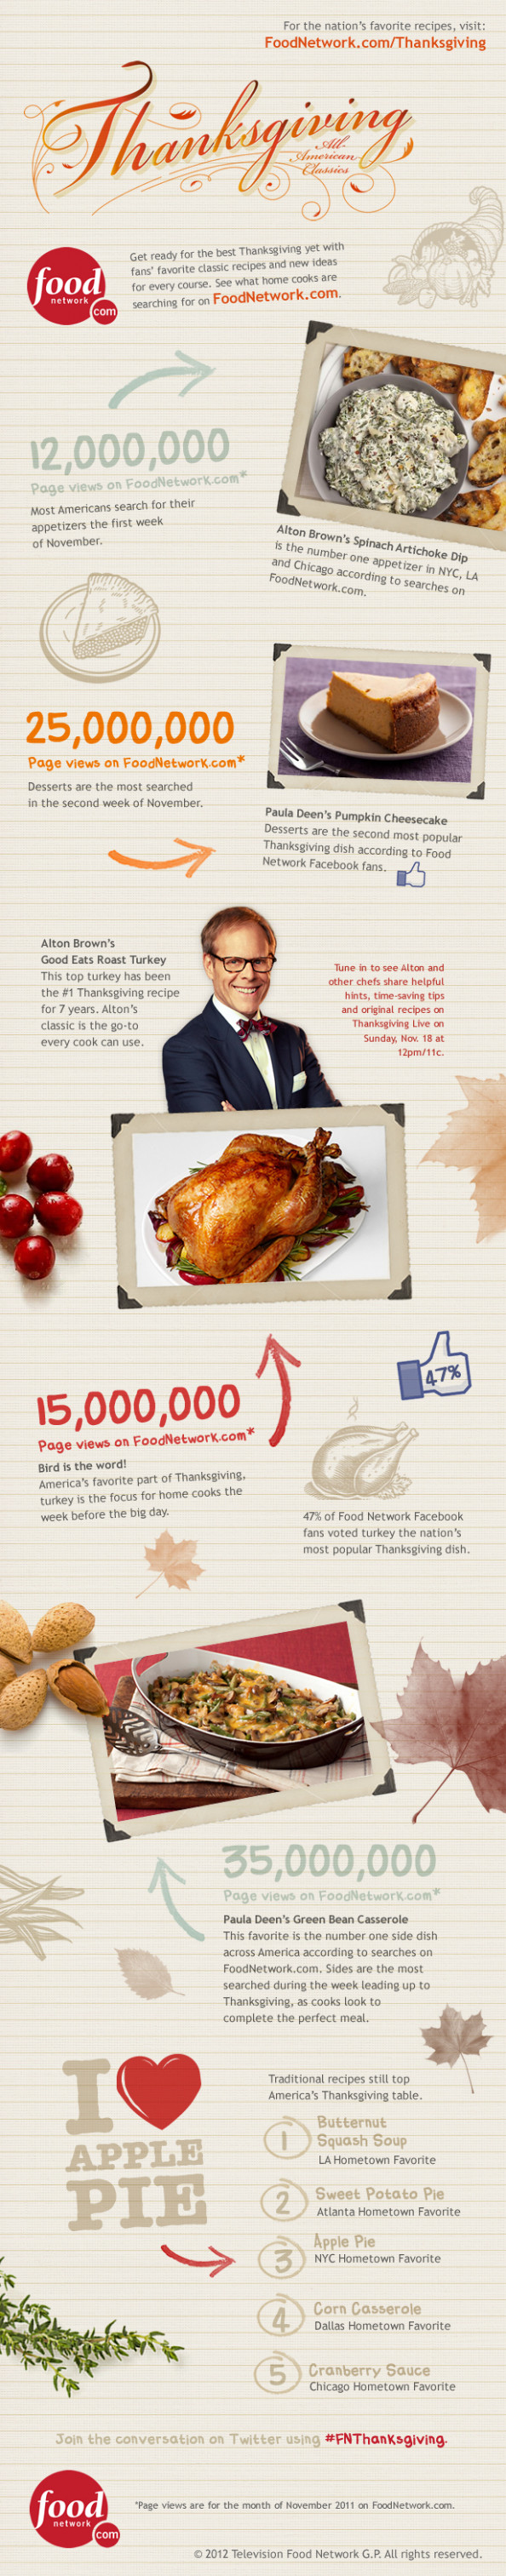 Food Network's Thanksgiving Search Infographic